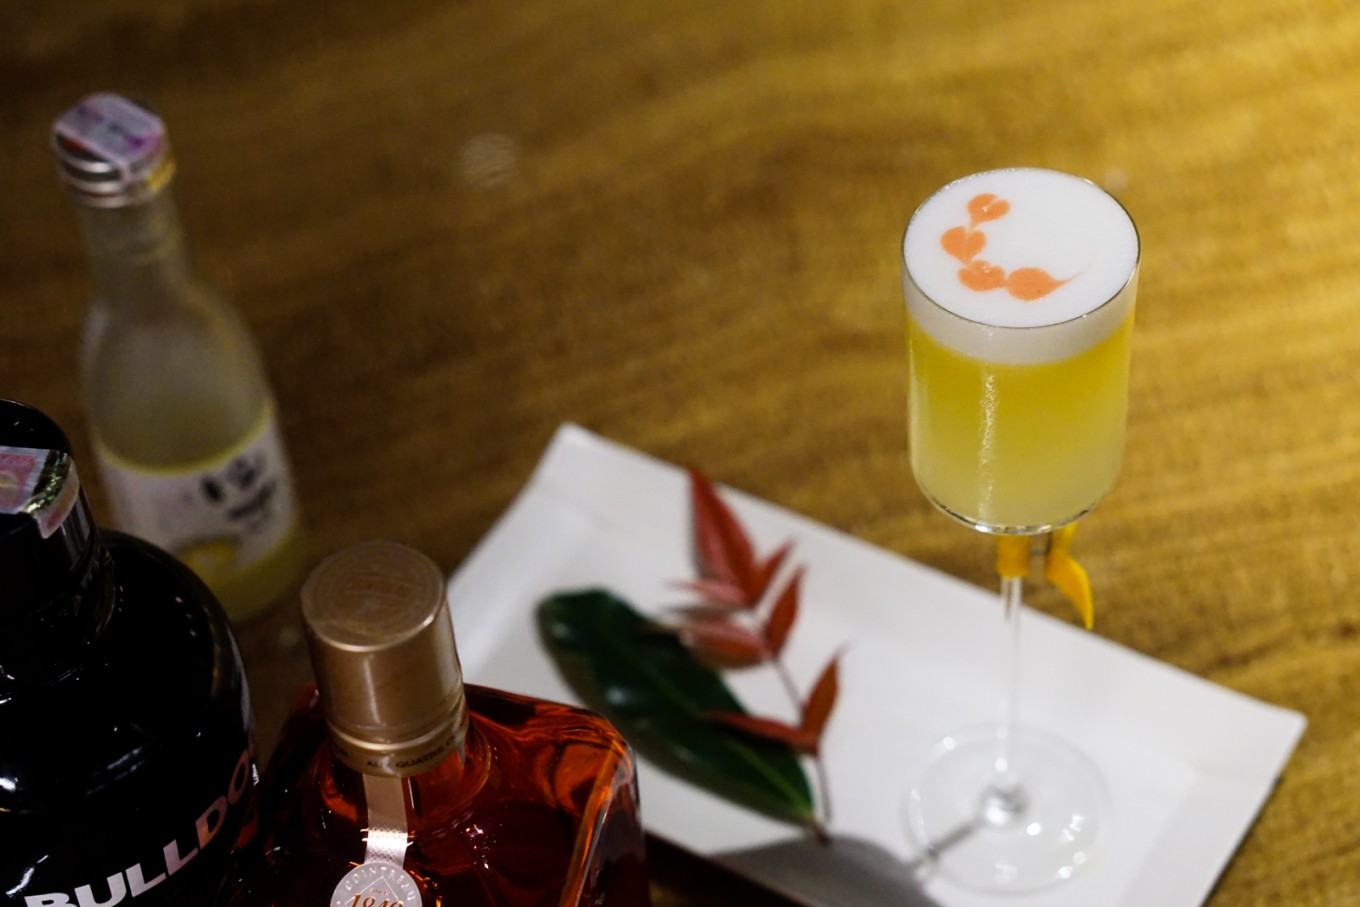 "Kei Bar presents the 'Yuzu Sake Cocktail': The idea of this cocktail comes from when Kei Bar's Indra Sartika was reflecting on Umenoyado Yuzu sake. ""It has dominant sweet-and-sour notes, which is not a perfect pairing for enjoying sashimi and sushi. Out of curiosity, I tried to create a cocktail using that same sake and to enhance the flavor to create a drink that could be enjoyed by many."" The Yuzu Sake Cocktail has a top-notch citrus aroma and a pretty masculine presentation that's a perfect yin/yang blend for Valentine's. Recipe: 30ml gin, 10ml Contreau, 10ml Umenoyado Yuzu Sake, 30ml orange juice, 5ml Yuzu juice, egg white."